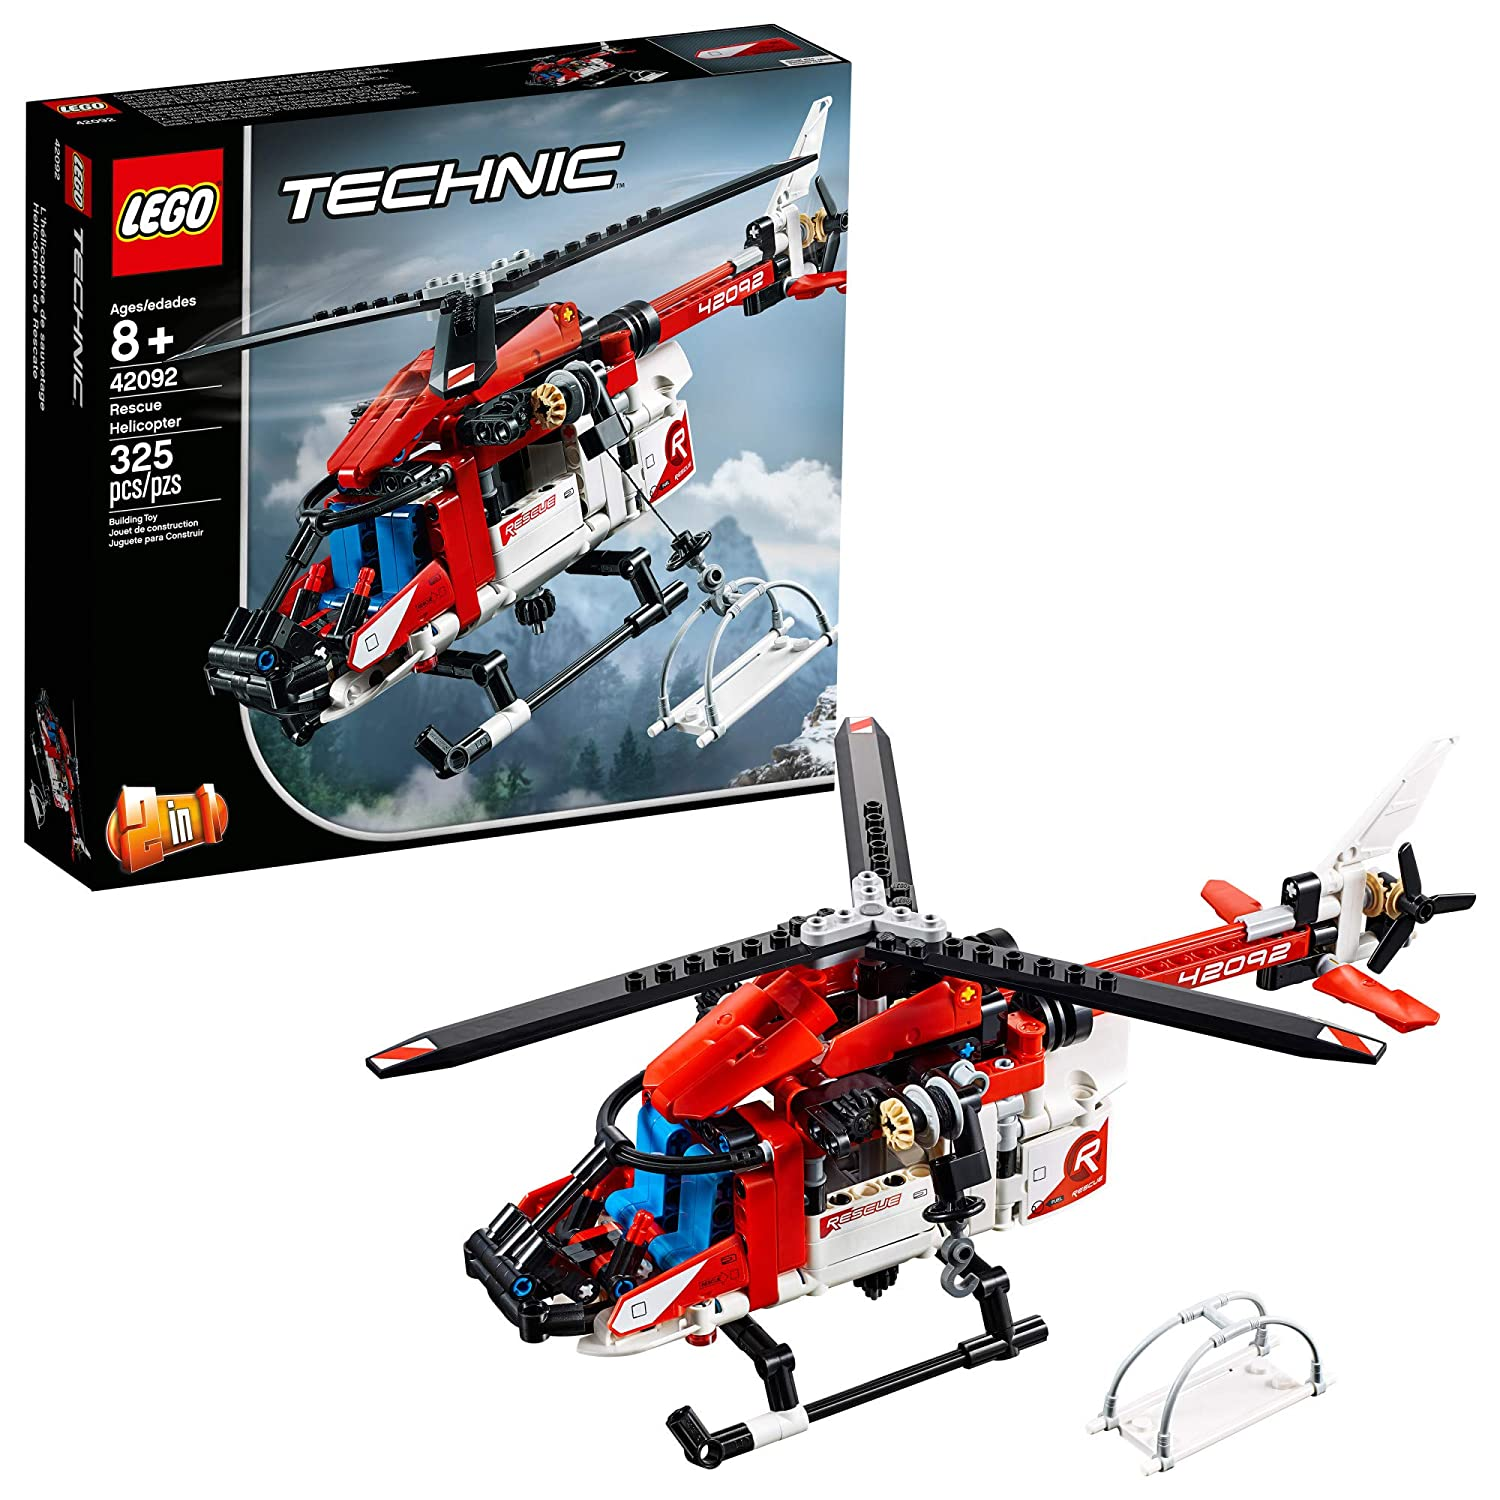 LEGO Technic Rescue Helicopter 42092 Building Kit